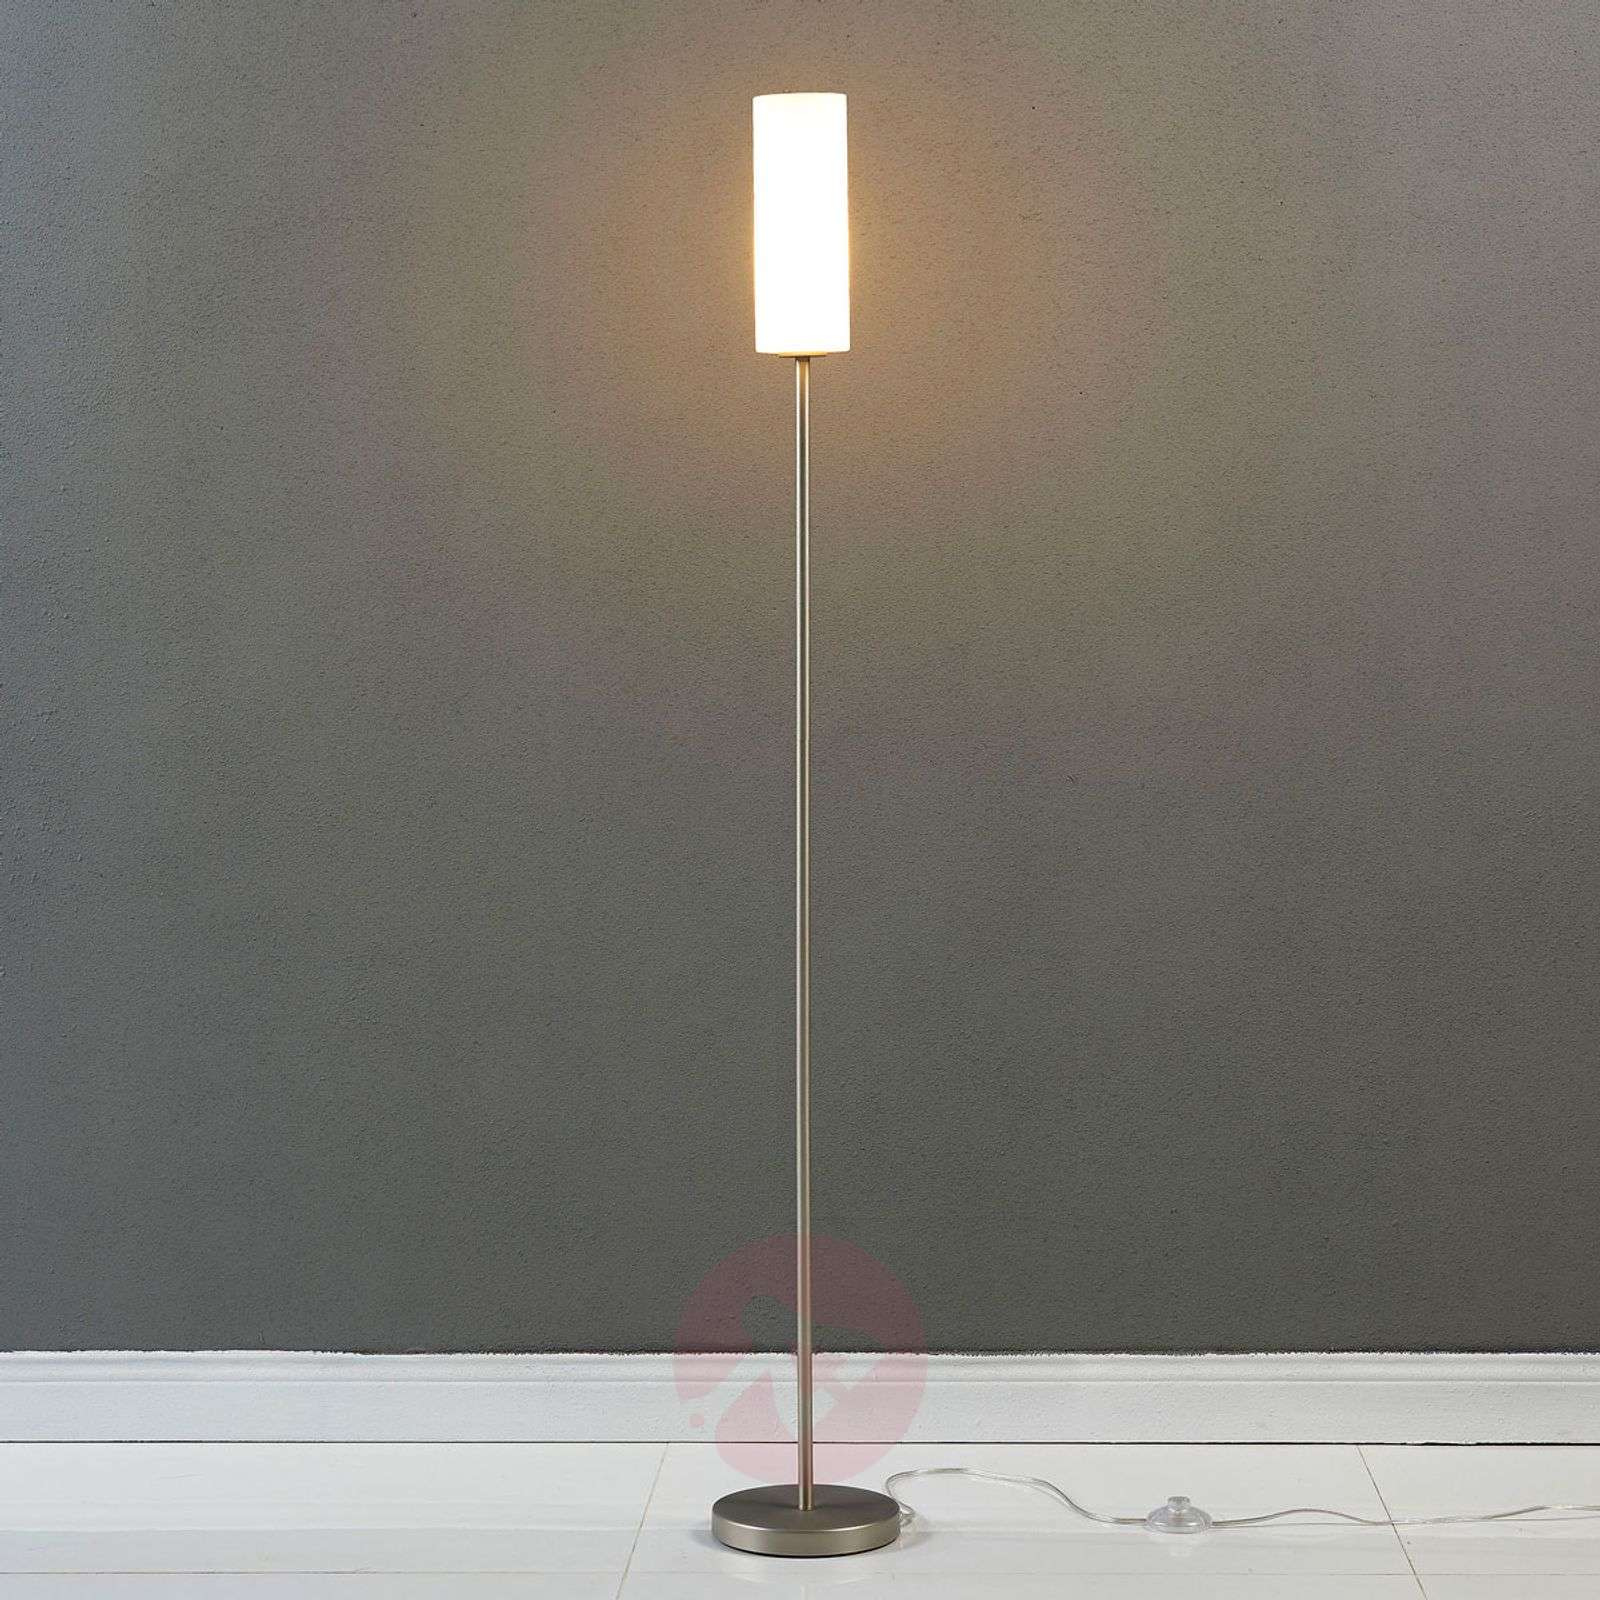 new arrival 13c46 3167f Discreet floor lamp Vinsta with slim glass shade